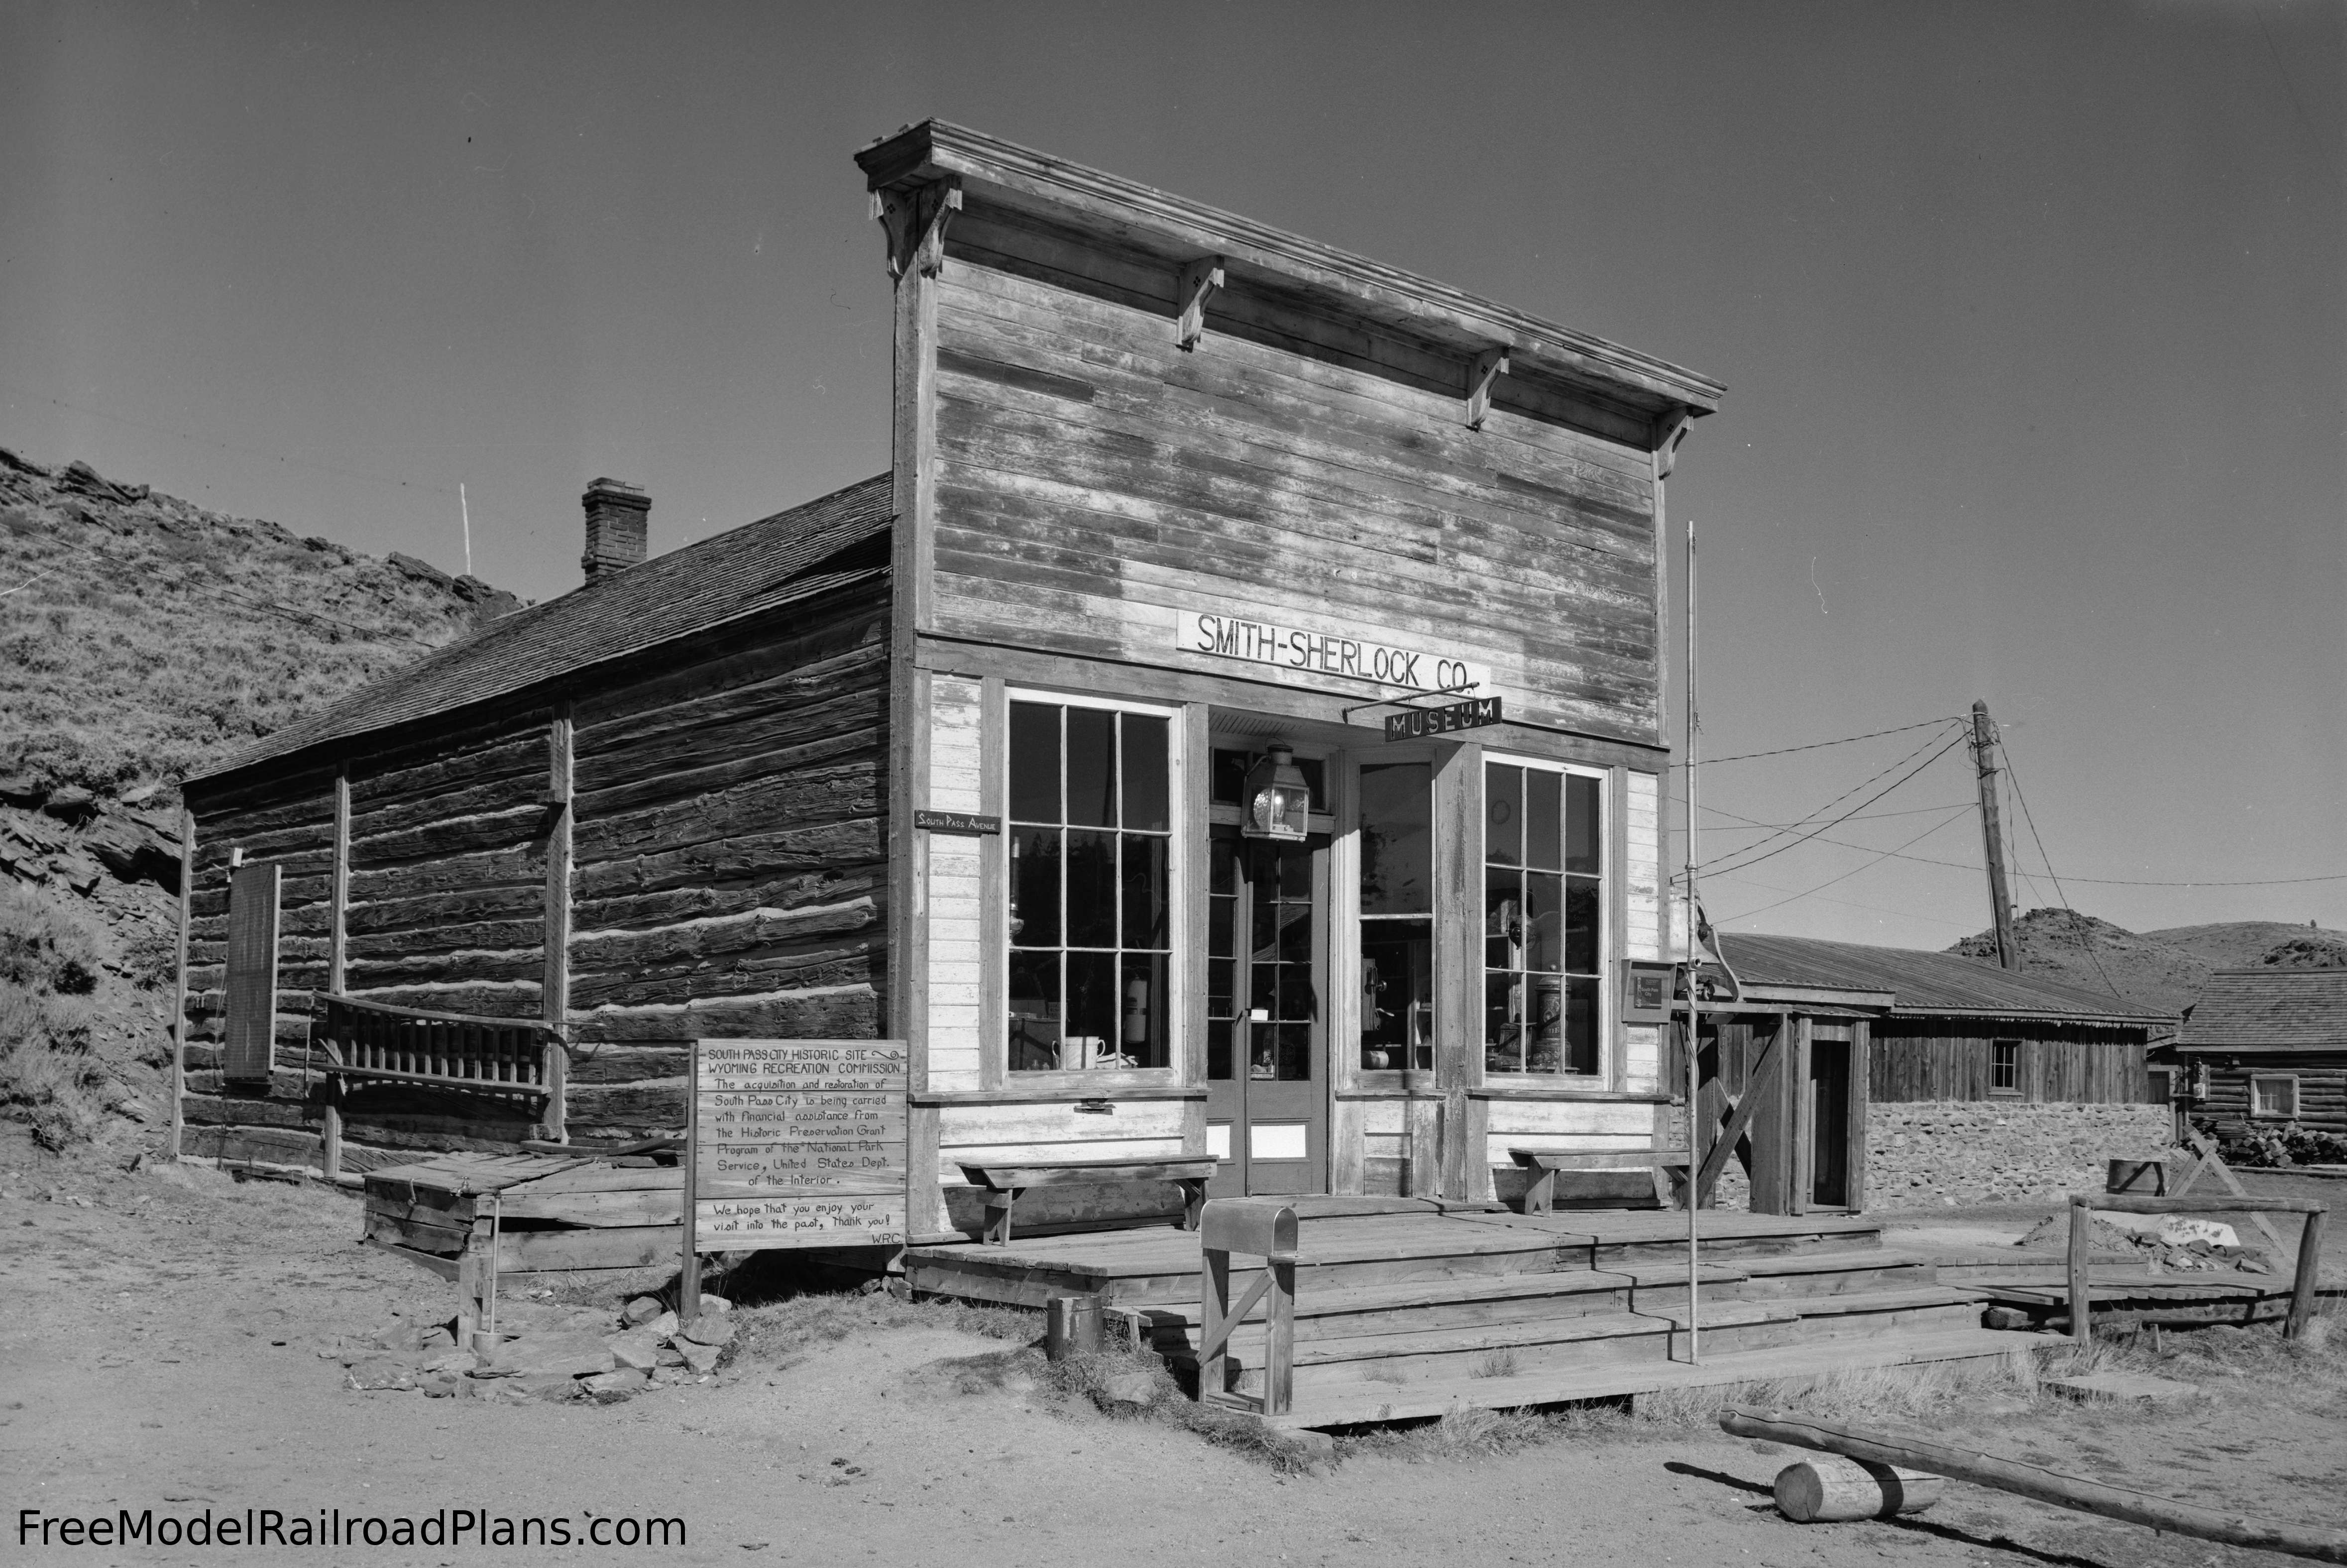 Smith Sherlock General Store Has Old West Charm Free